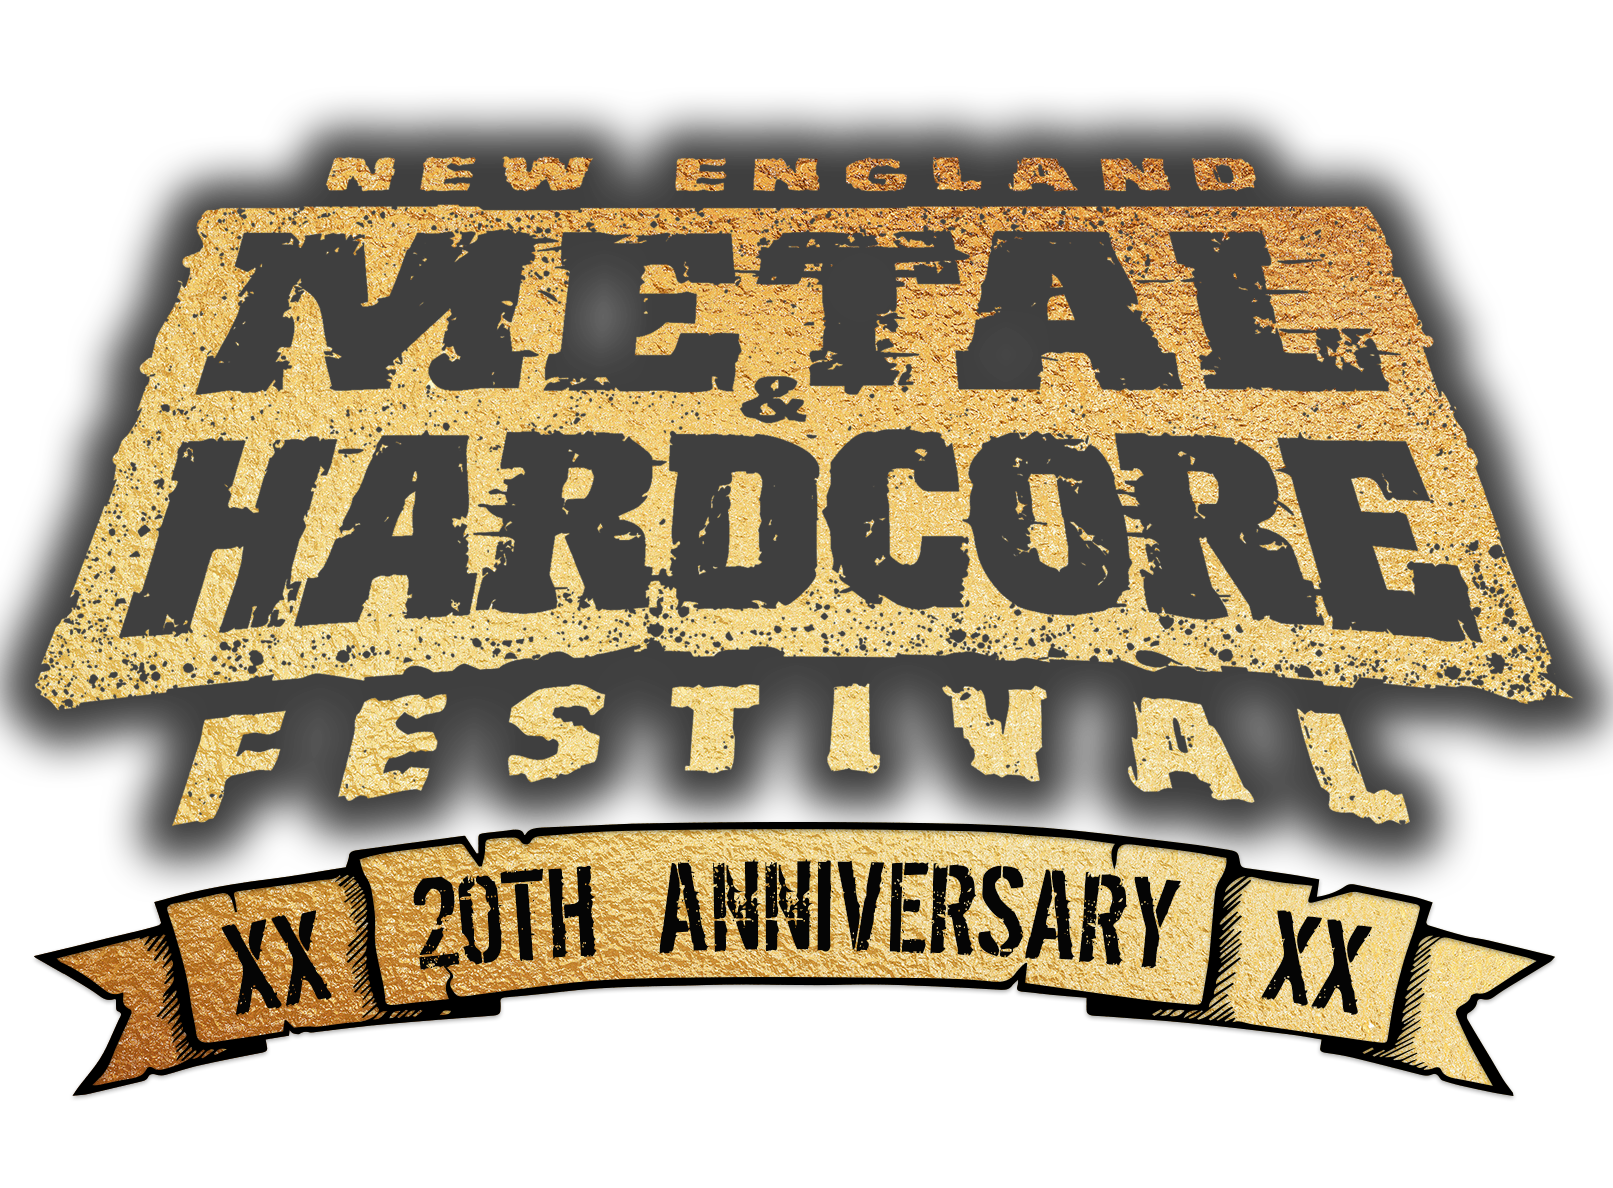 New englands heavy metal hardcore festival